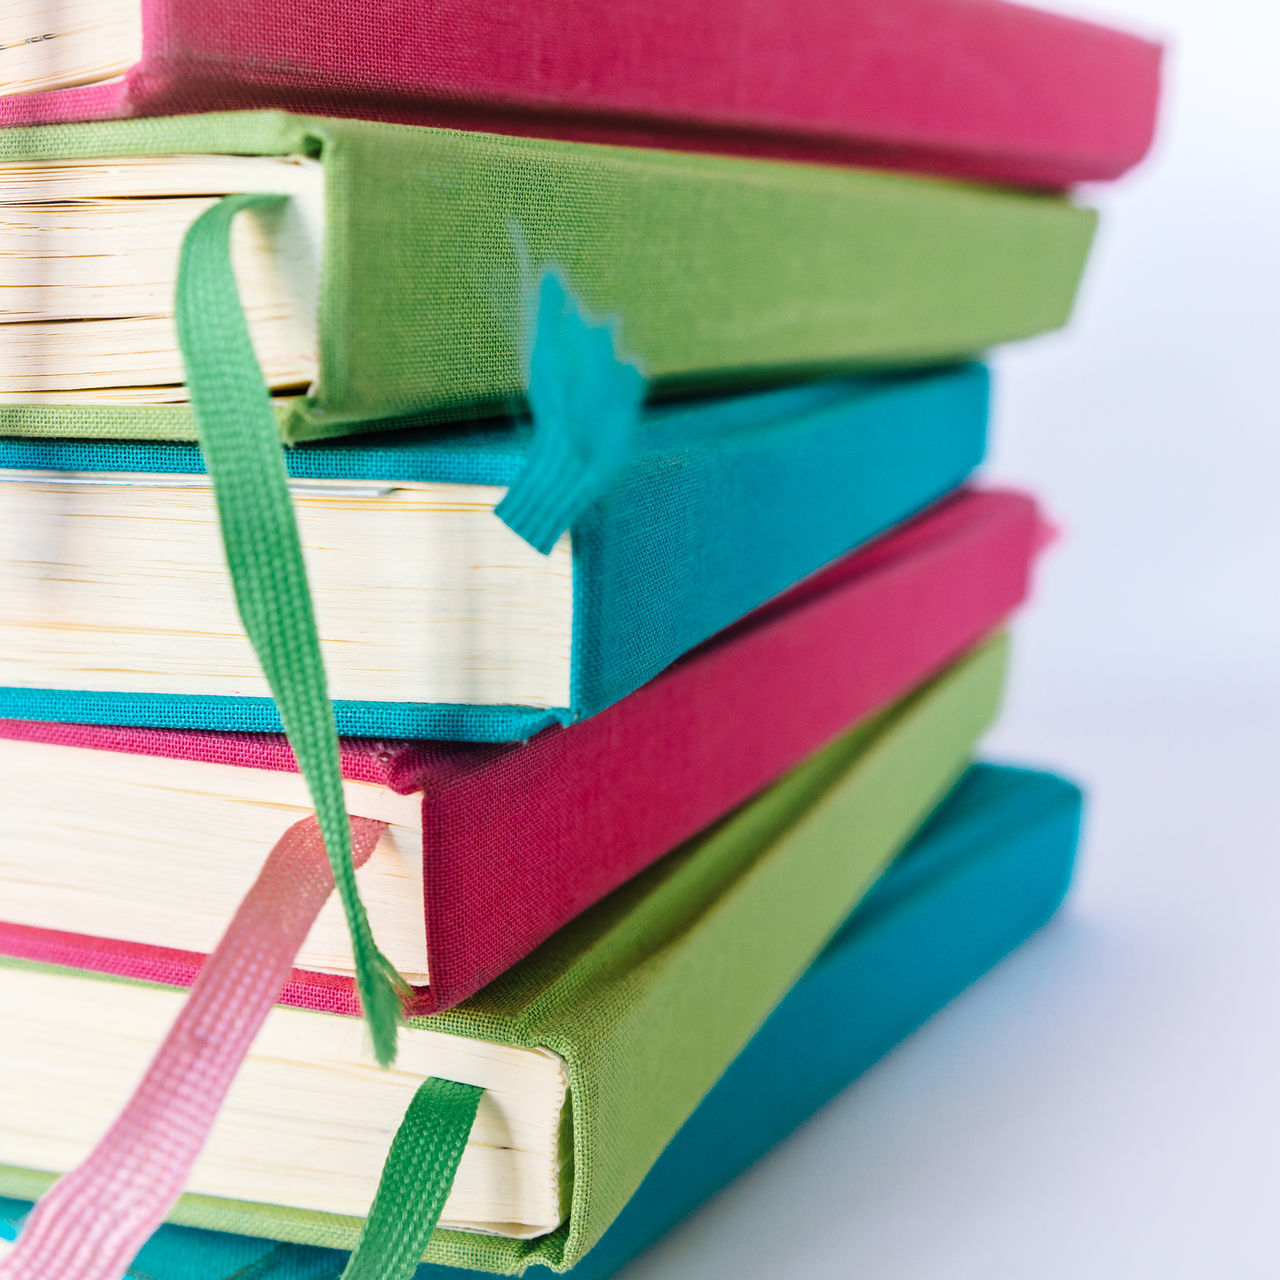 Colorful Books Blue Books Close-up Colorful Colors Cyan Education Educational Green Indoors  Learning LearningEveryday No People Pink Reading Reading Books Reading Time Stack Study Hard Study Time Studying Table